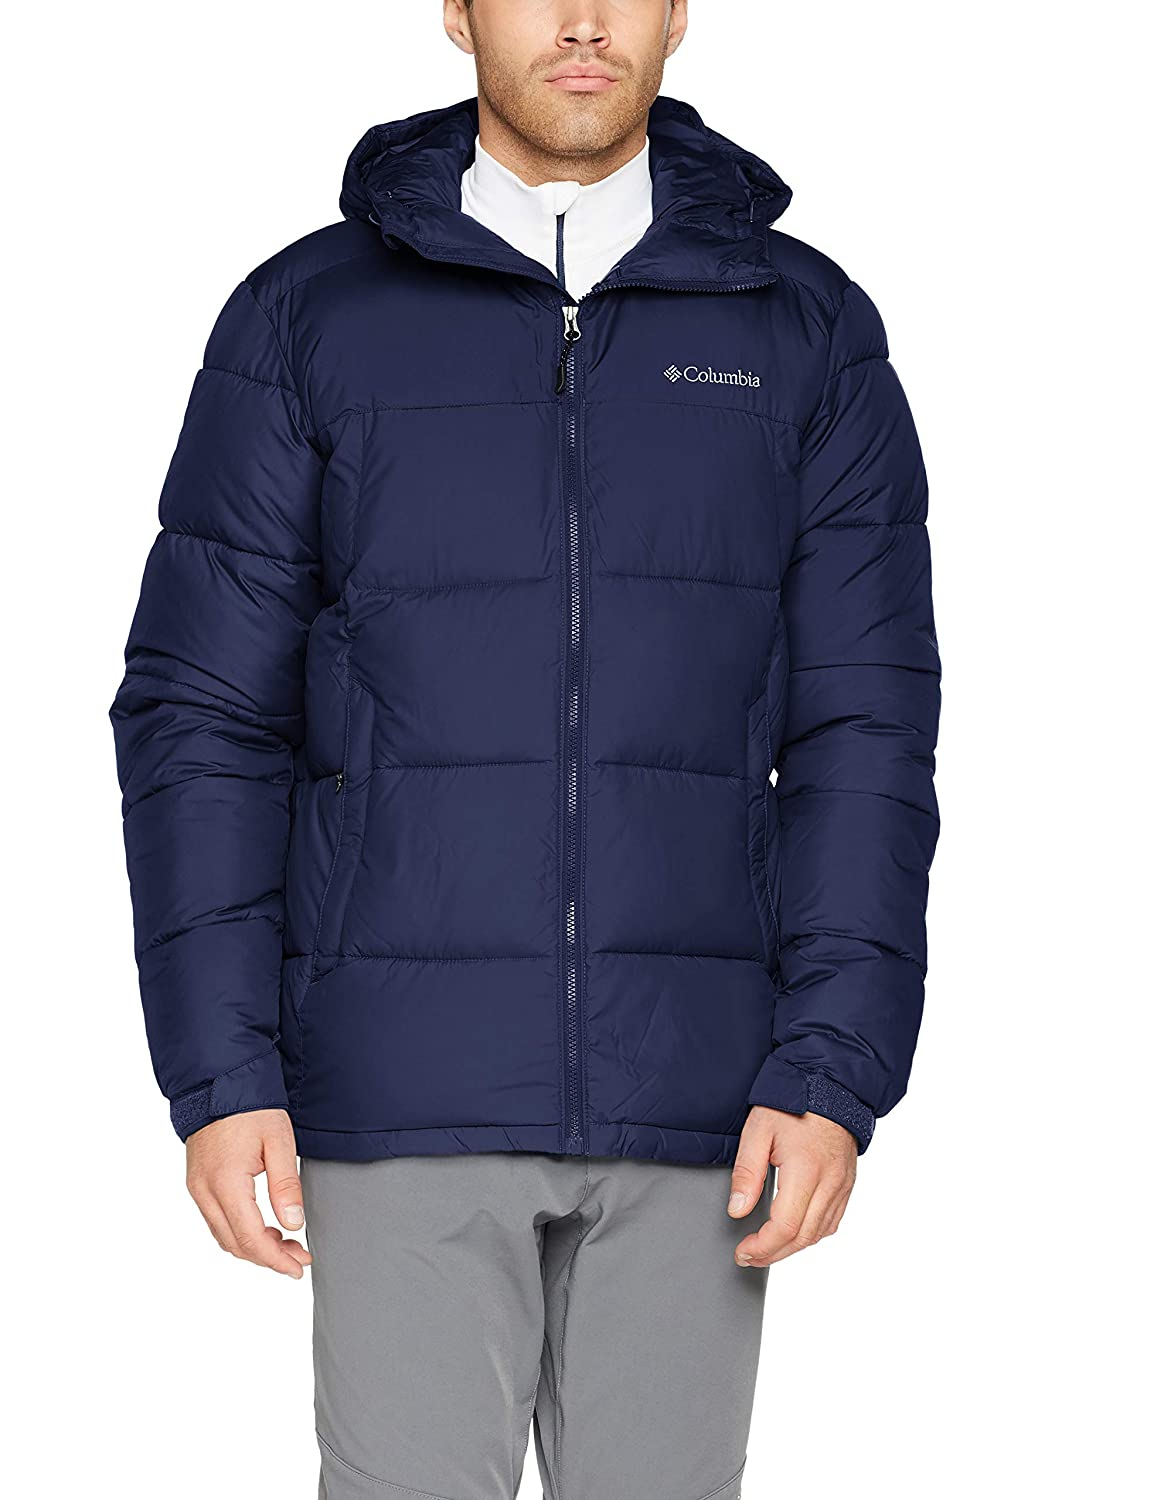 Lake D'hiver Jacket Imperméable Homme Pike Veste Columbia Hooded qgXCUnxOw5